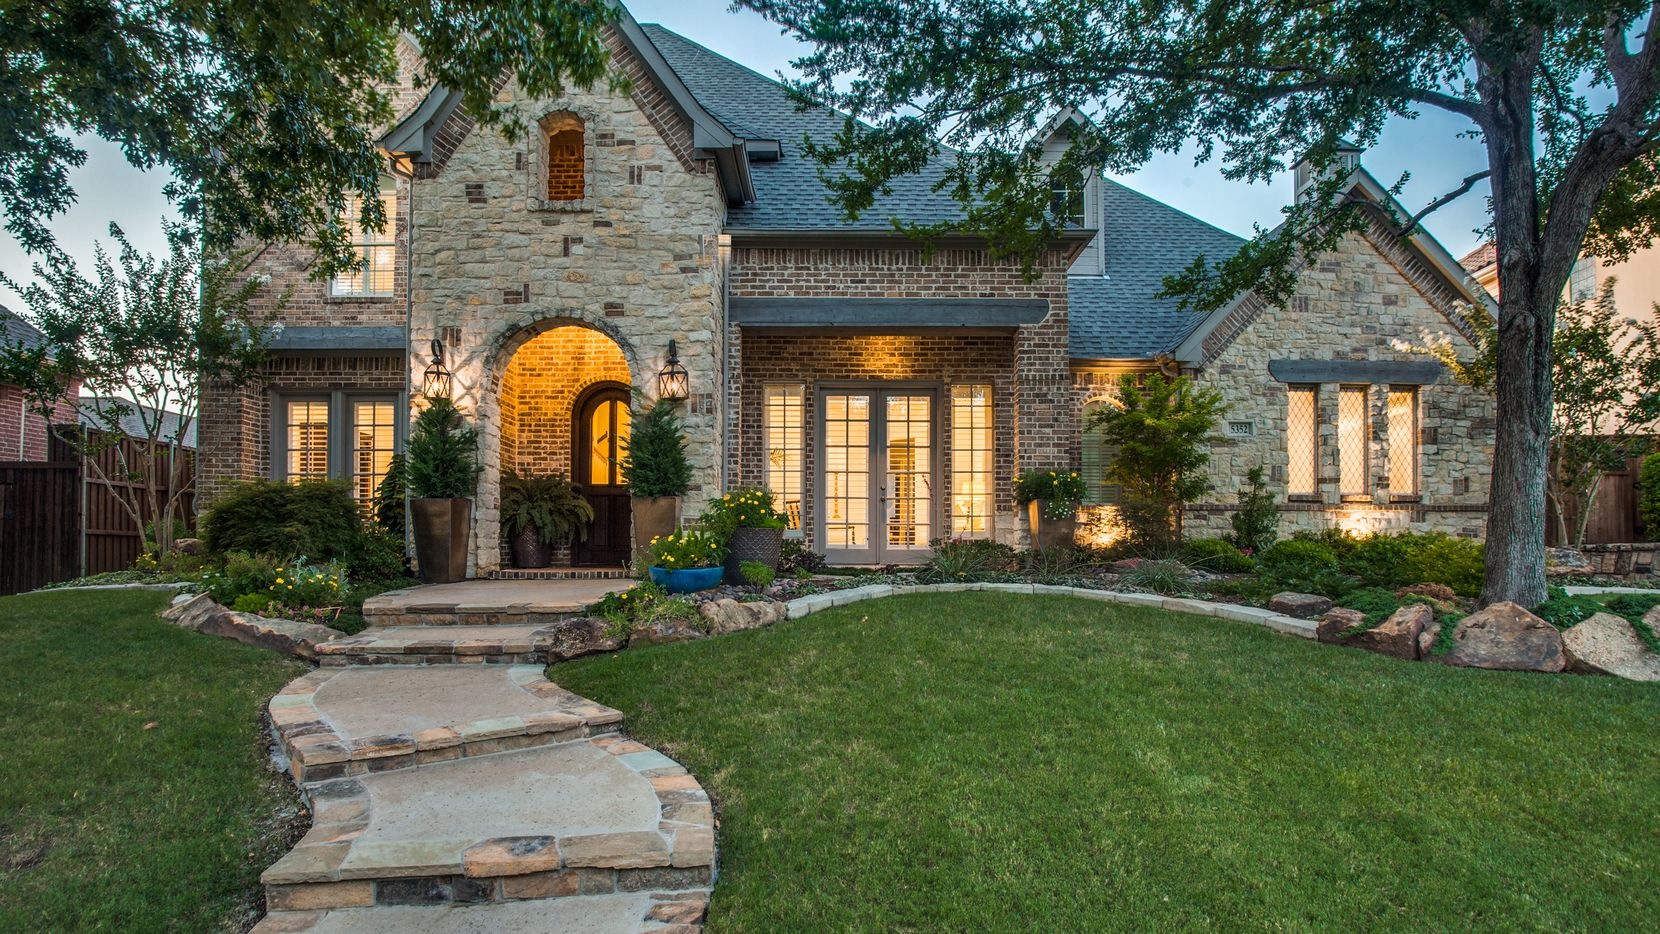 The home at 5352 Northshore Drive in Frisco, priced at $675,000, is being offered by Judi Wright with Ebby Halliday Realtors' Frisco office.